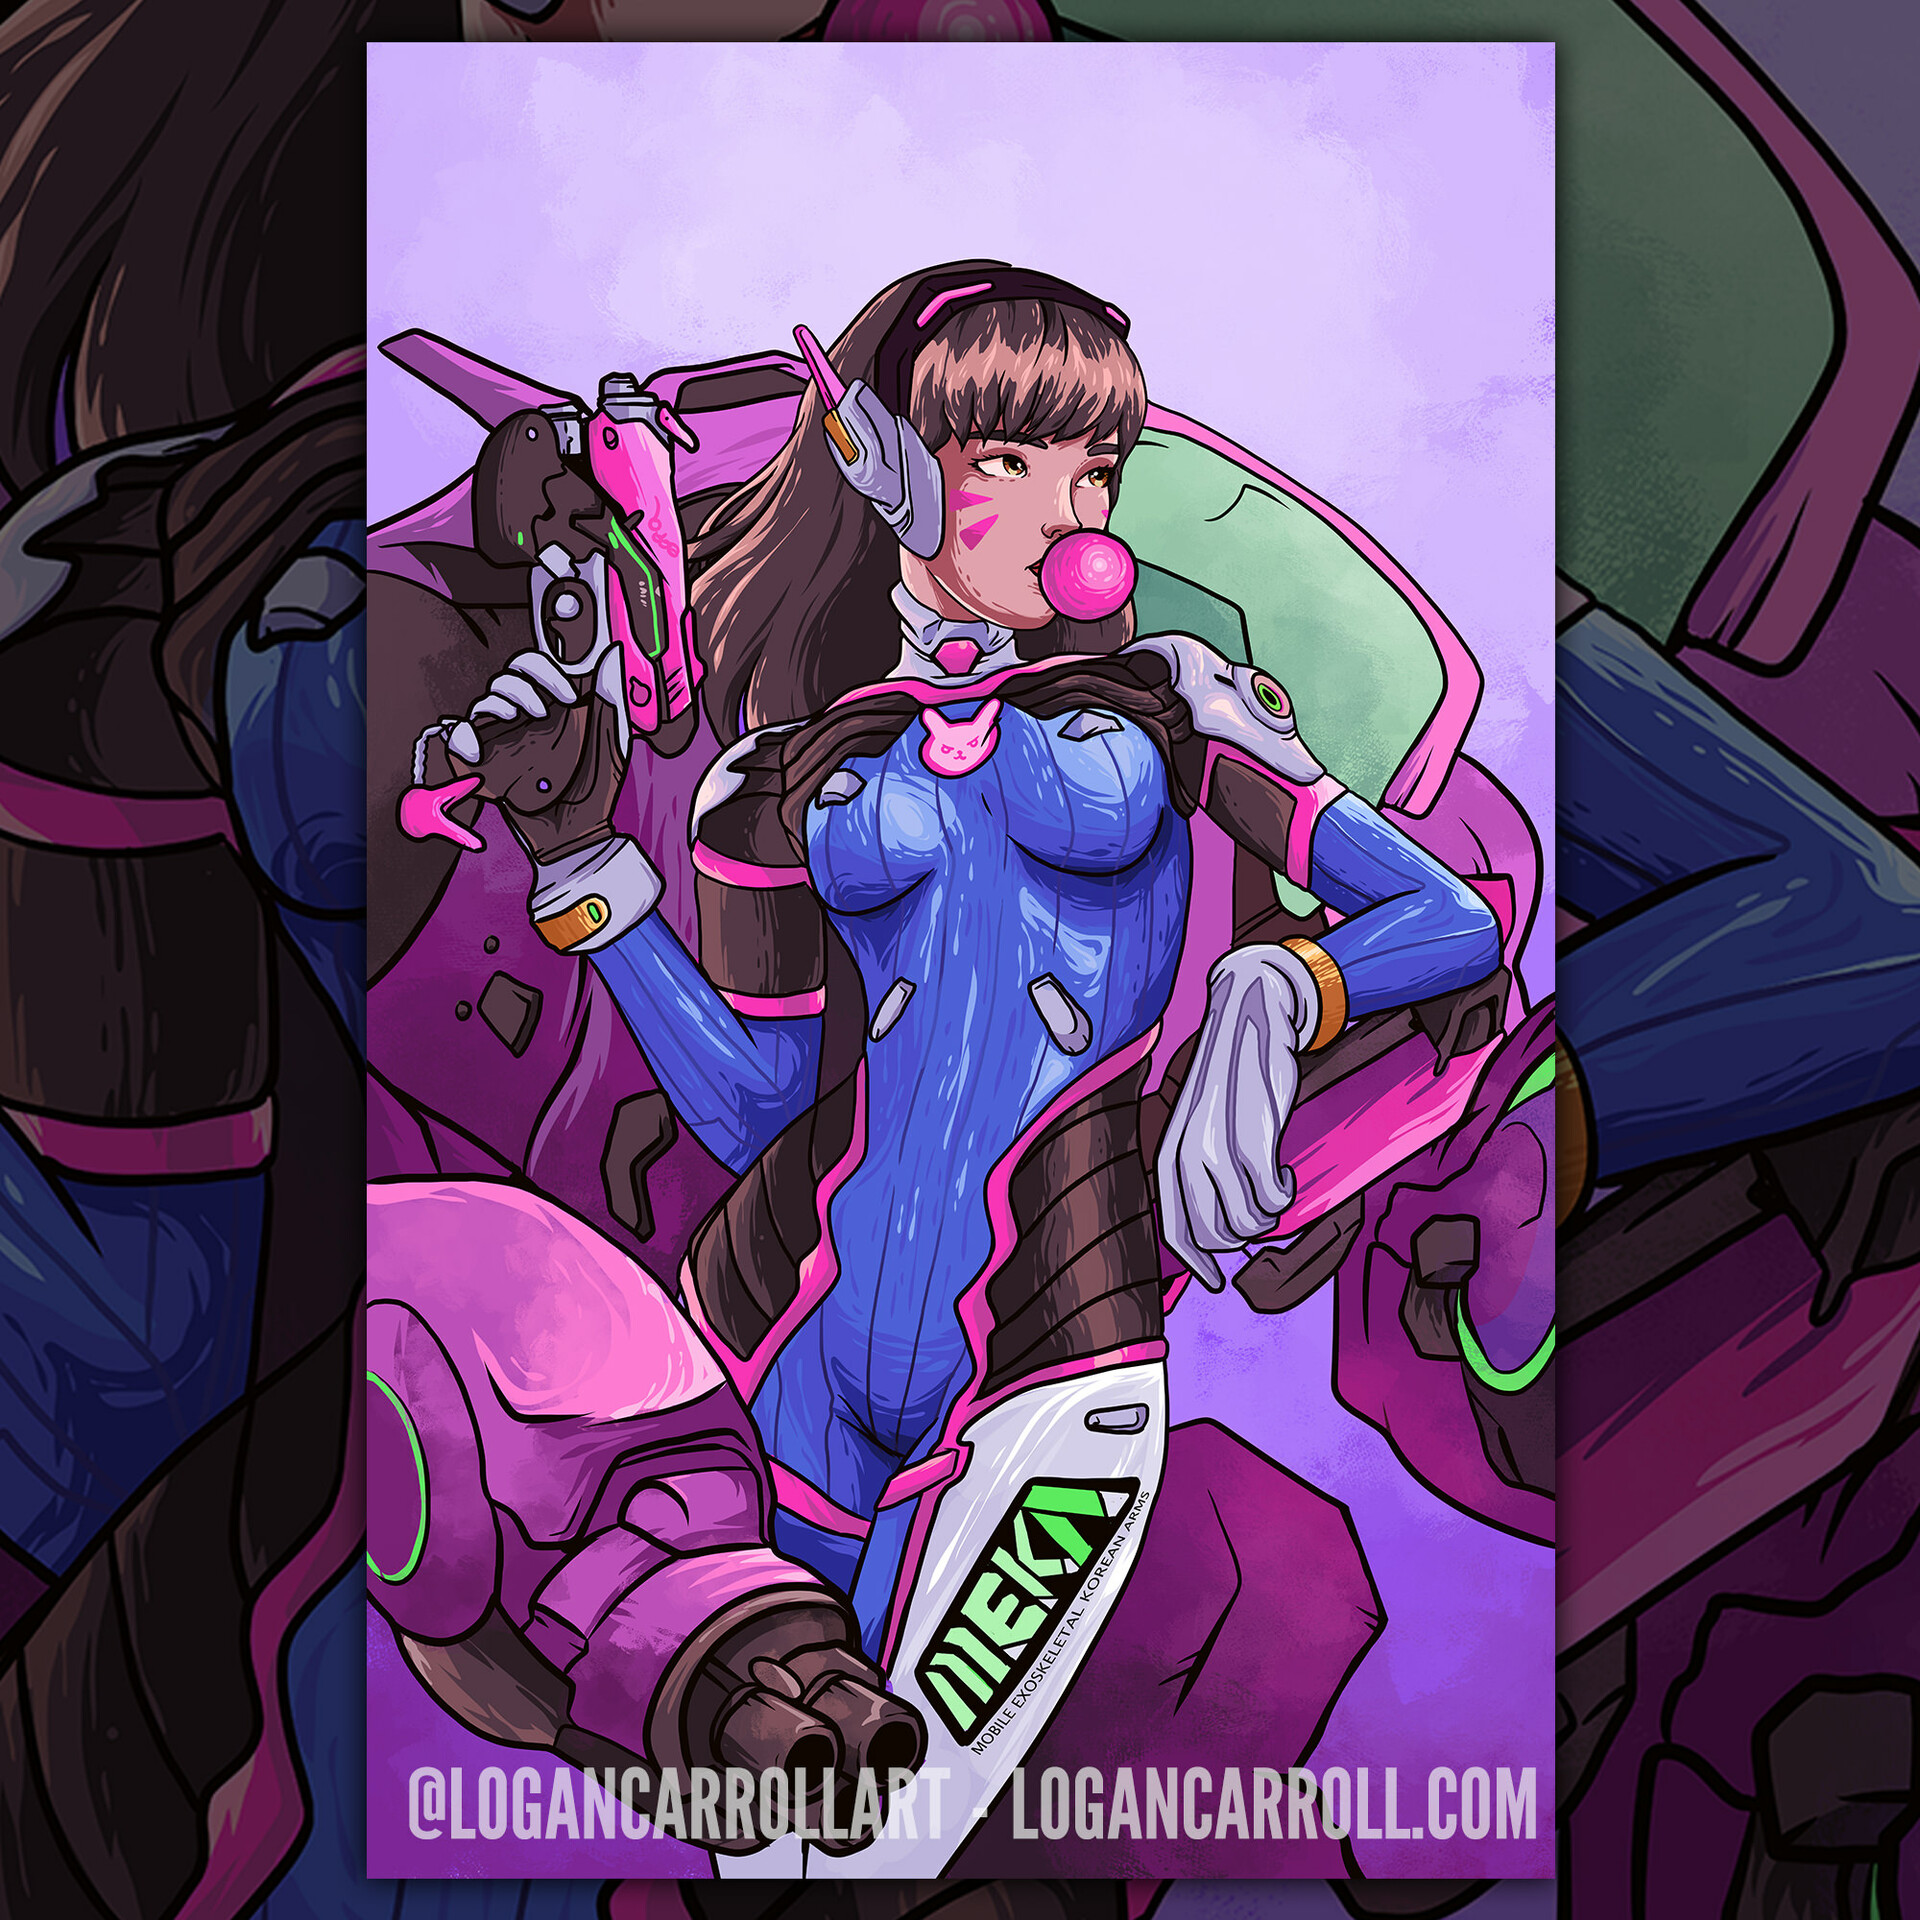 Logan carroll dva